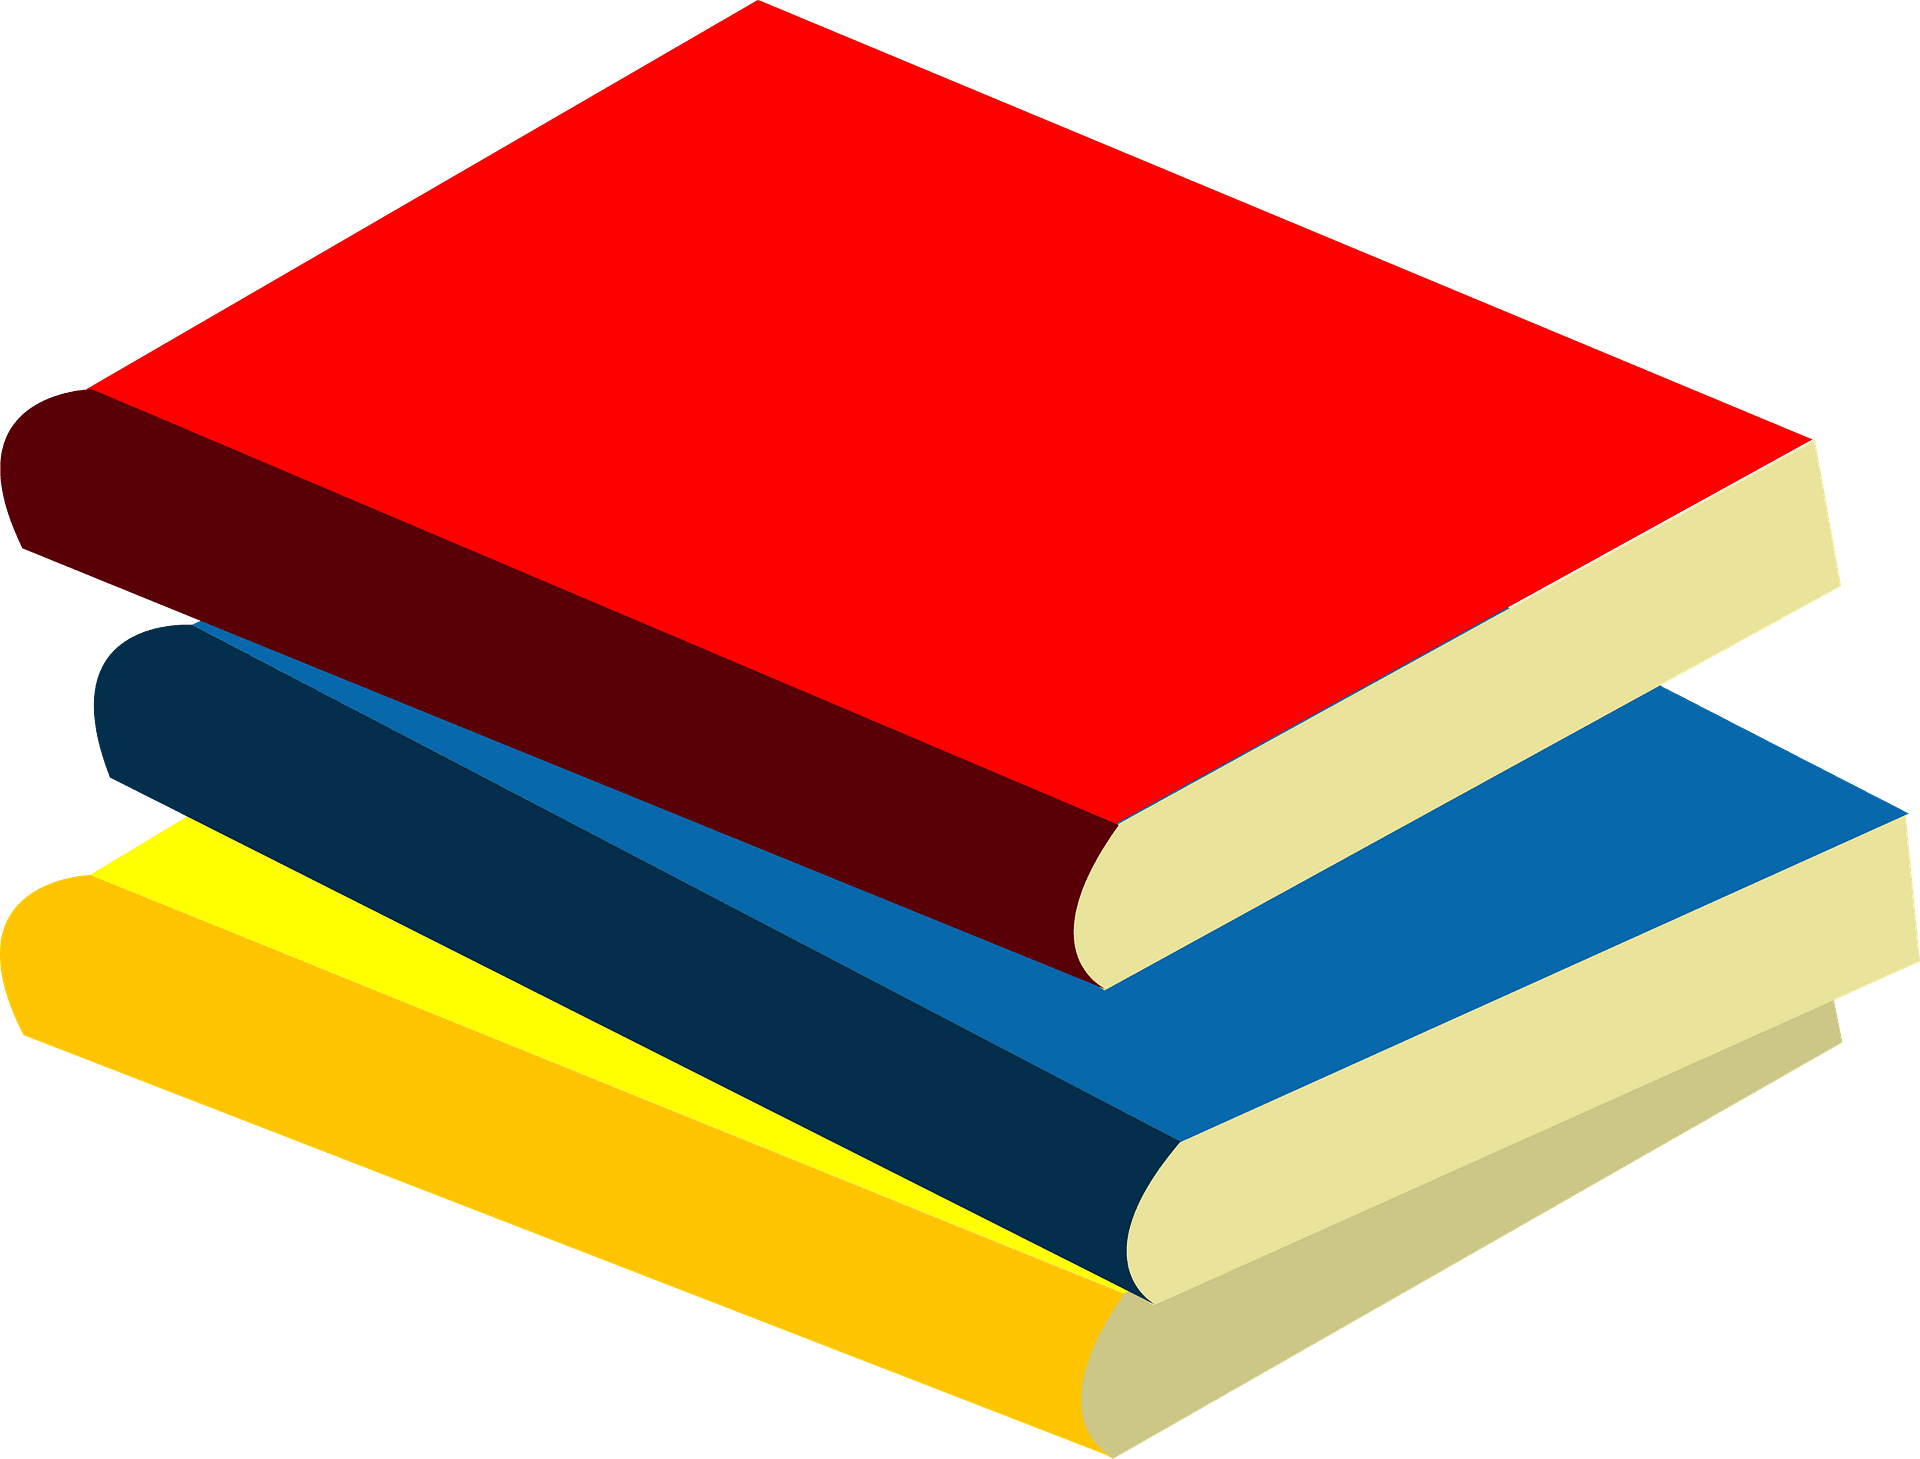 Books clipart line, Books line Transparent FREE for download on  WebStockReview 2020